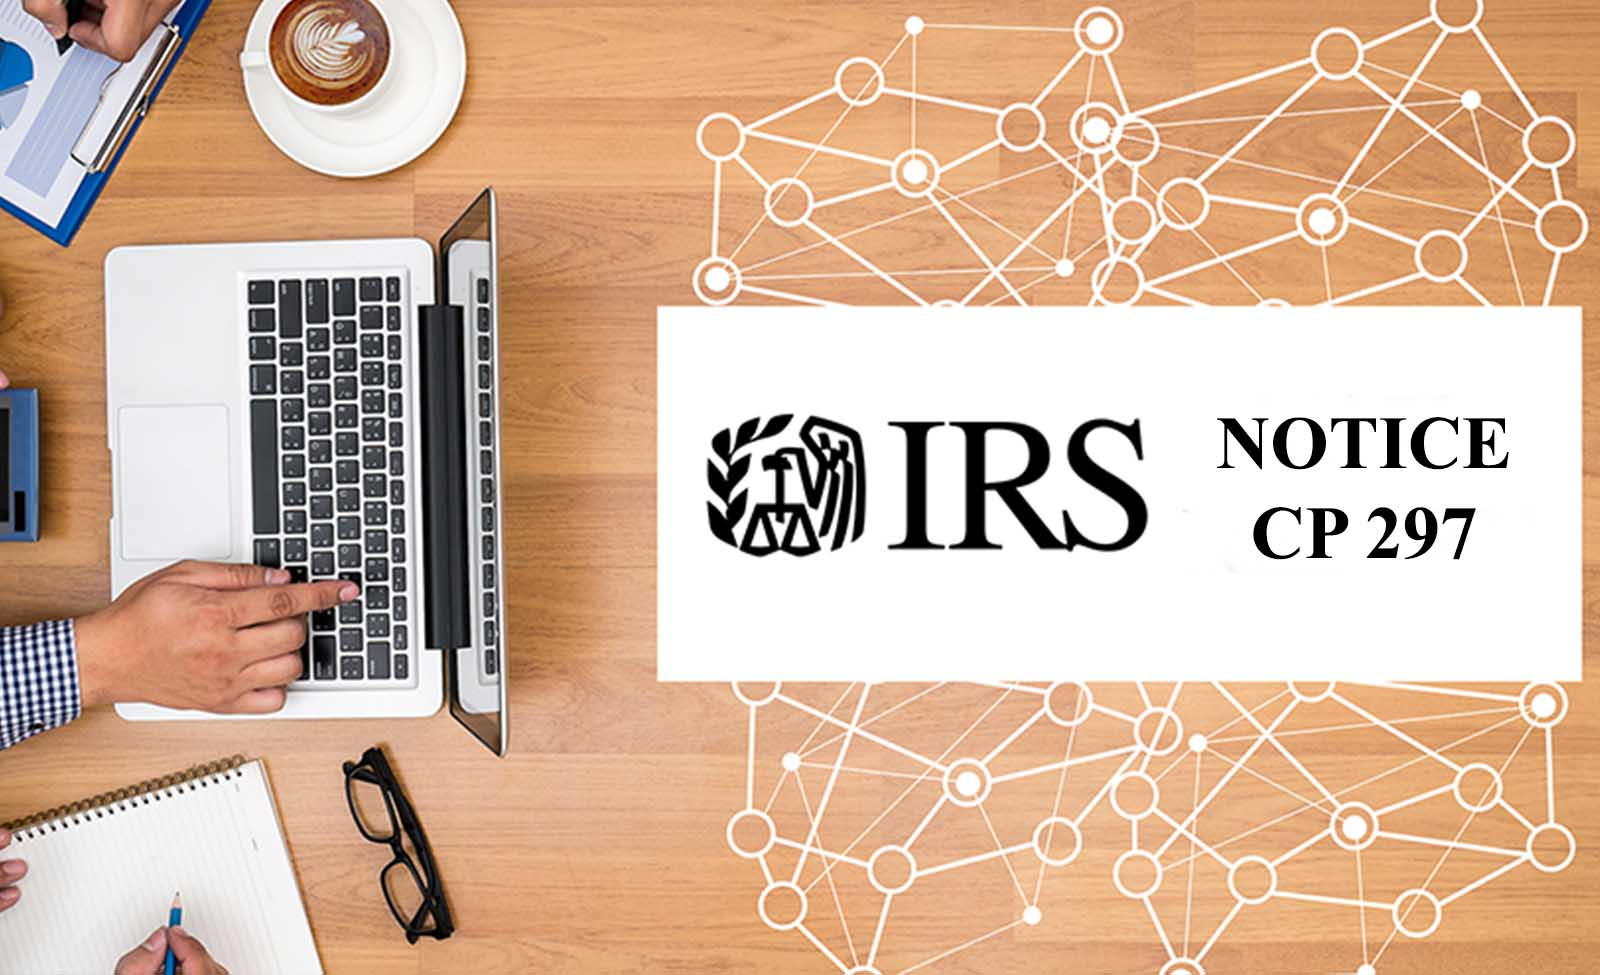 How to Respond to IRS Notice of Intent to Levy (CP 297)